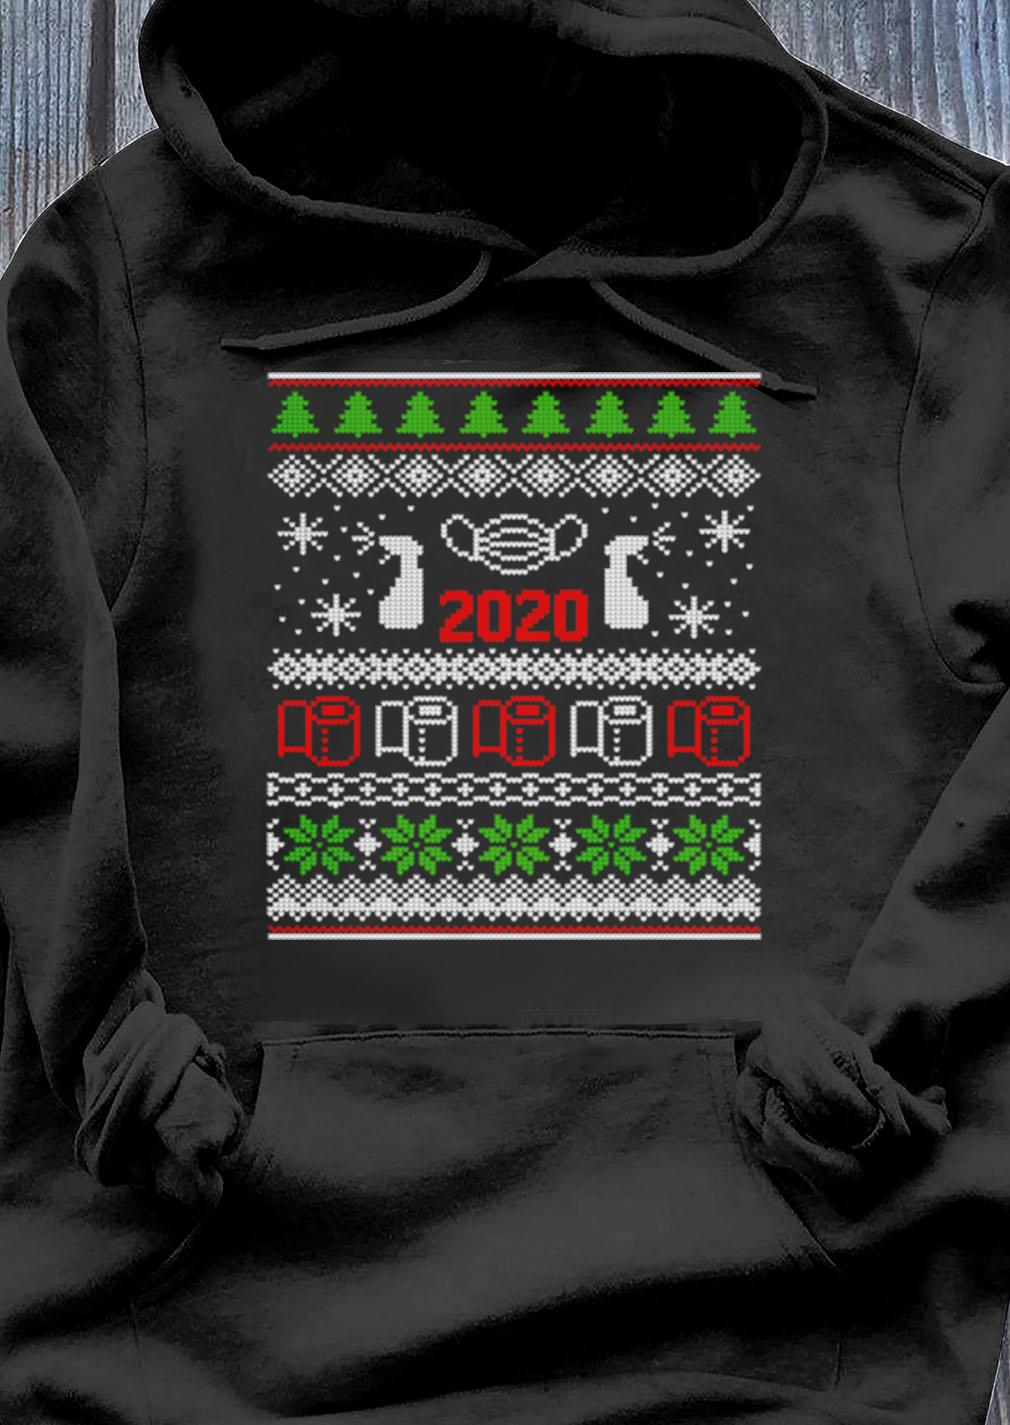 Ugly Christmas Sweater 2020 Toilet Paper Pandemic Funny Xmas Gifts Shirt Hoodie